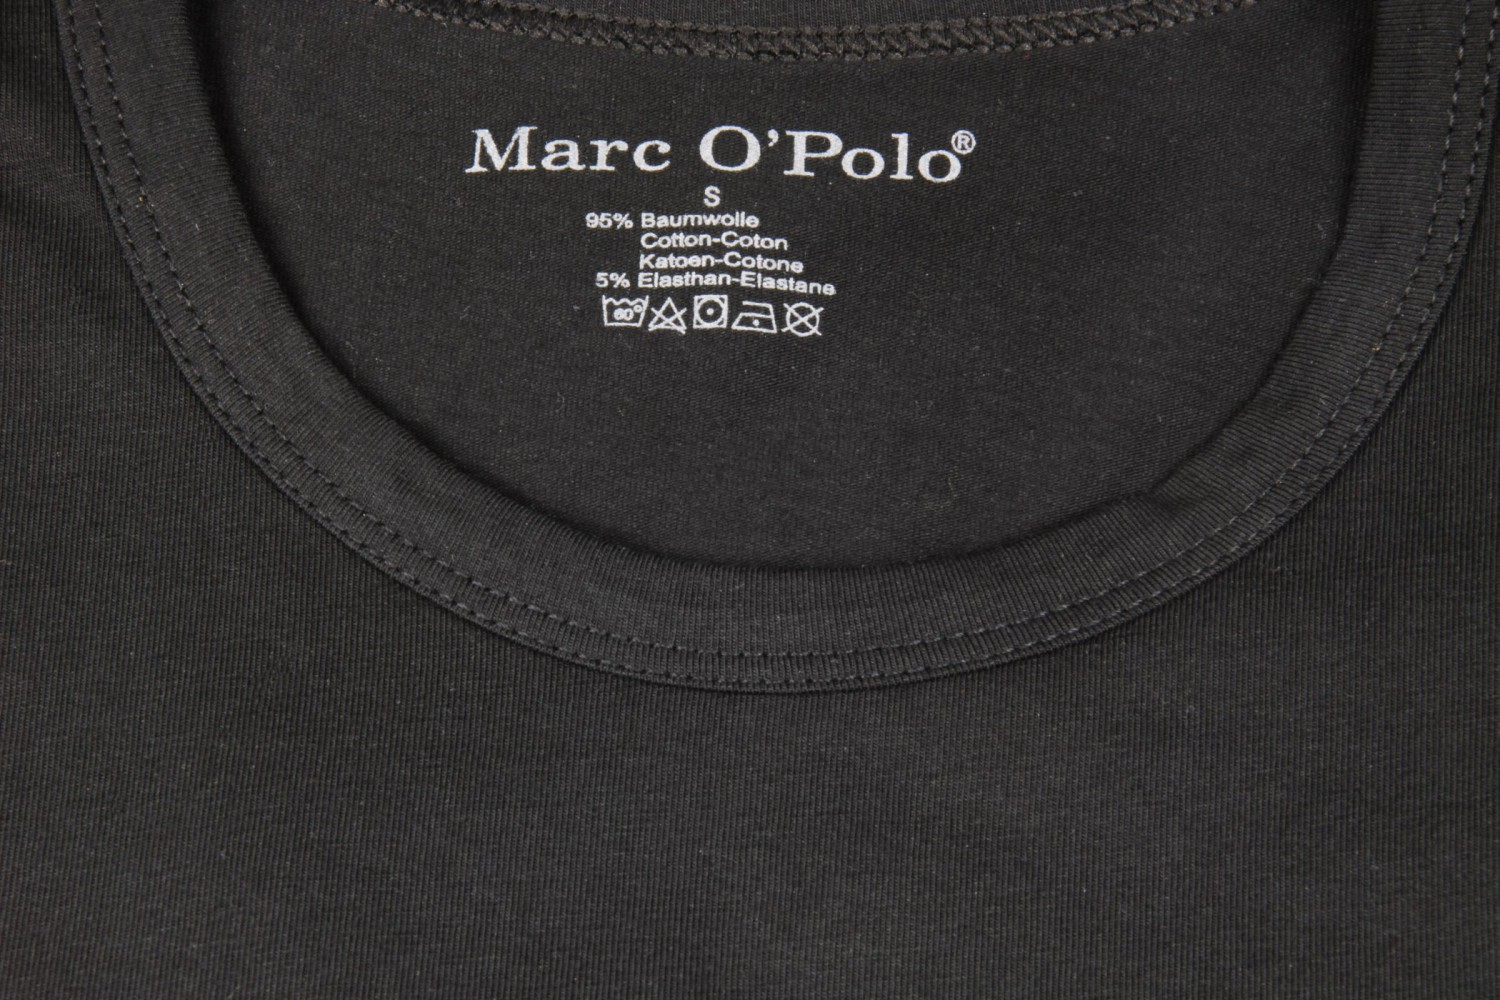 2 er pack marc o polo t shirt rundhals schwarz s m l. Black Bedroom Furniture Sets. Home Design Ideas